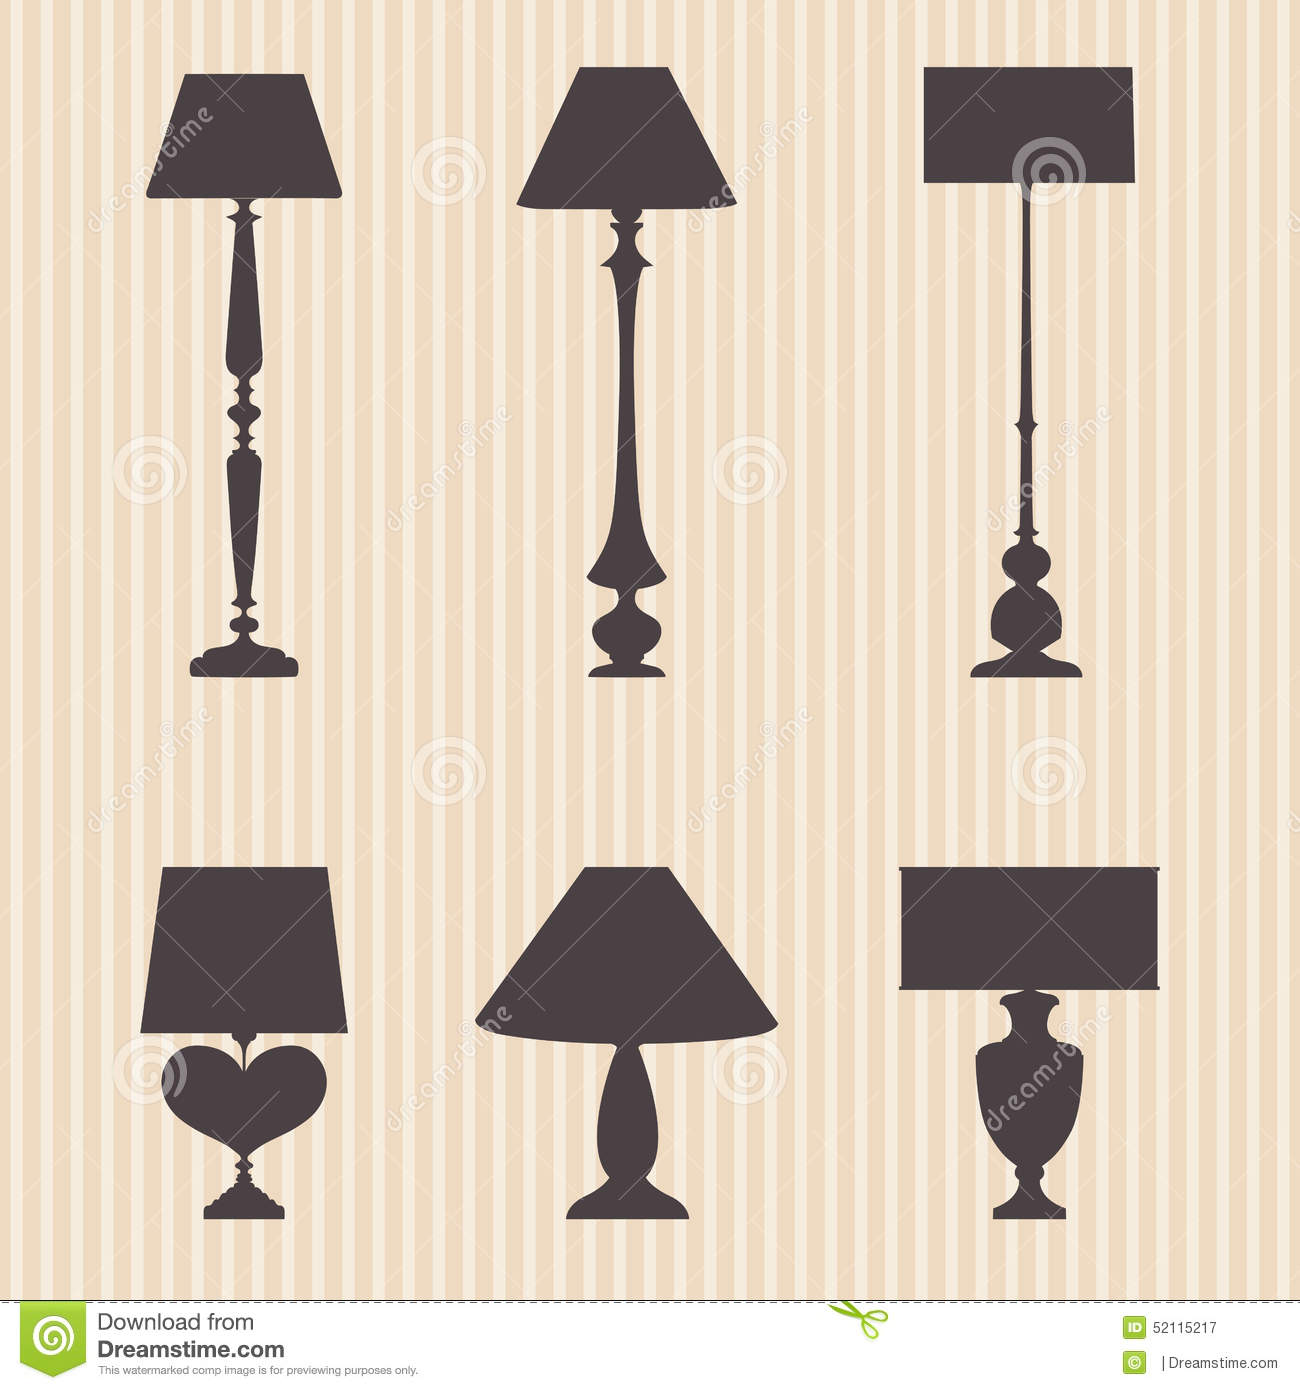 Wall Sconce Electrical Symbol : Set Of Silhouettes Lamp And Sconce Stock Vector - Image: 52115217